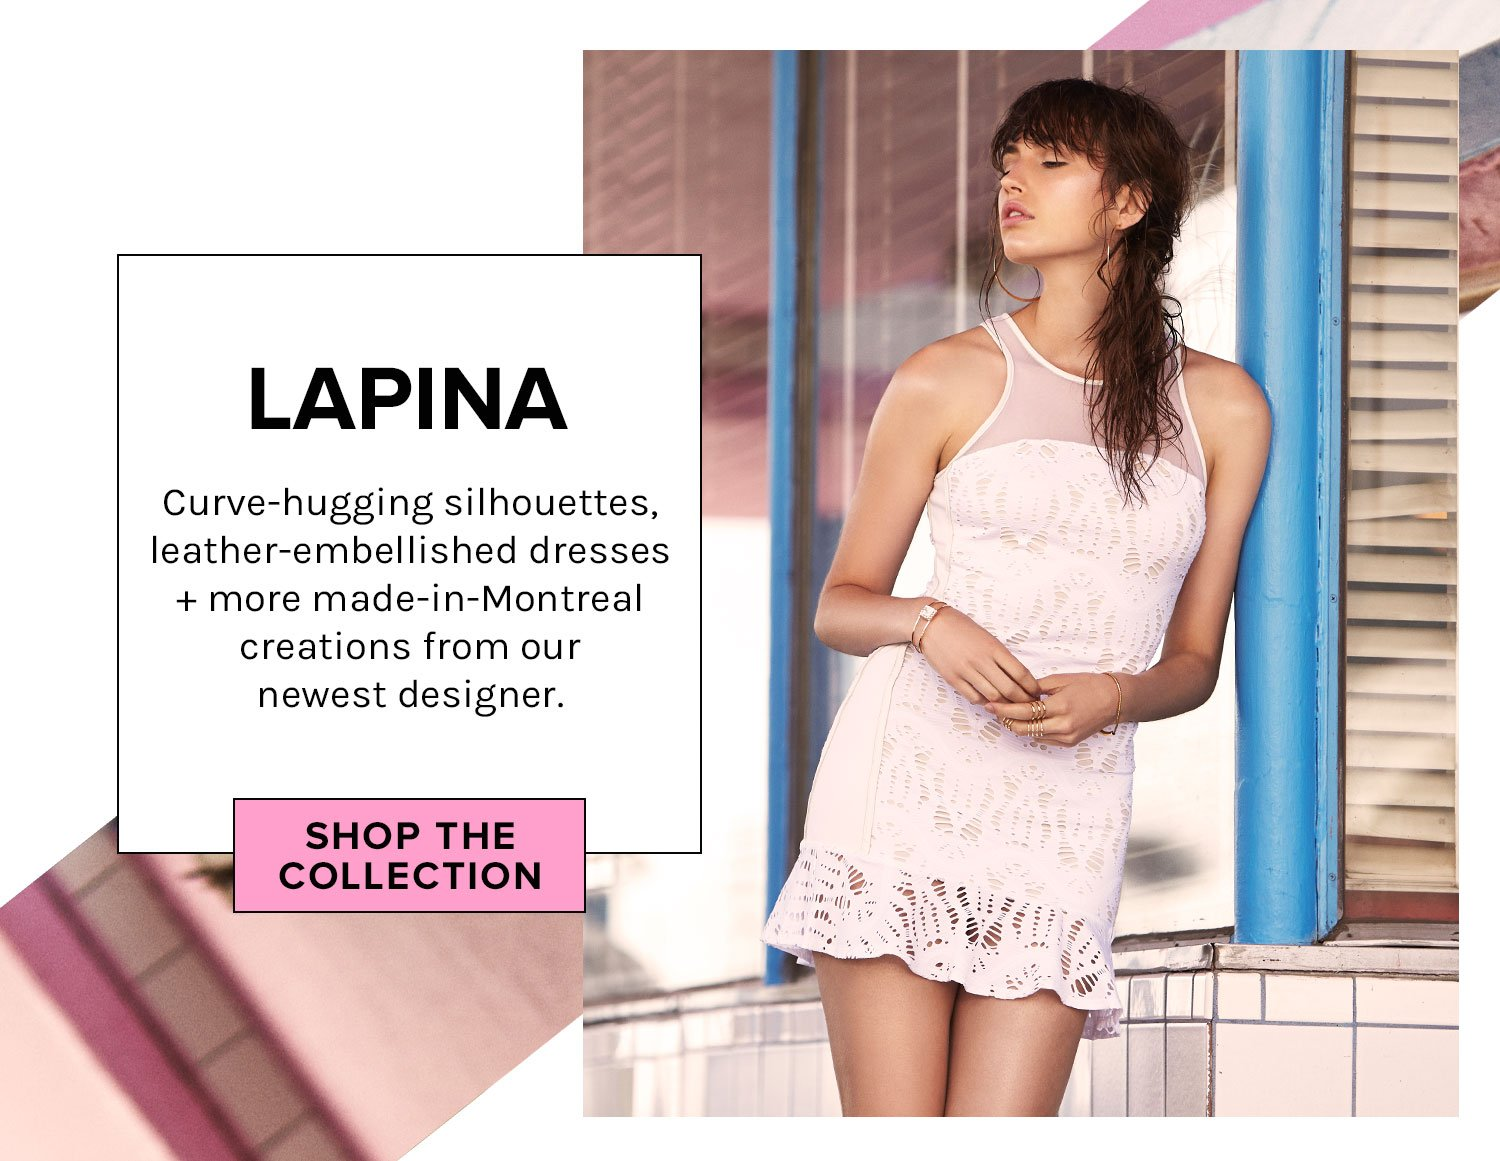 LAPINA. Curve-hugging silhouettes, leather-embellished dresses + more made-in-Montreal creations from our newest designer.